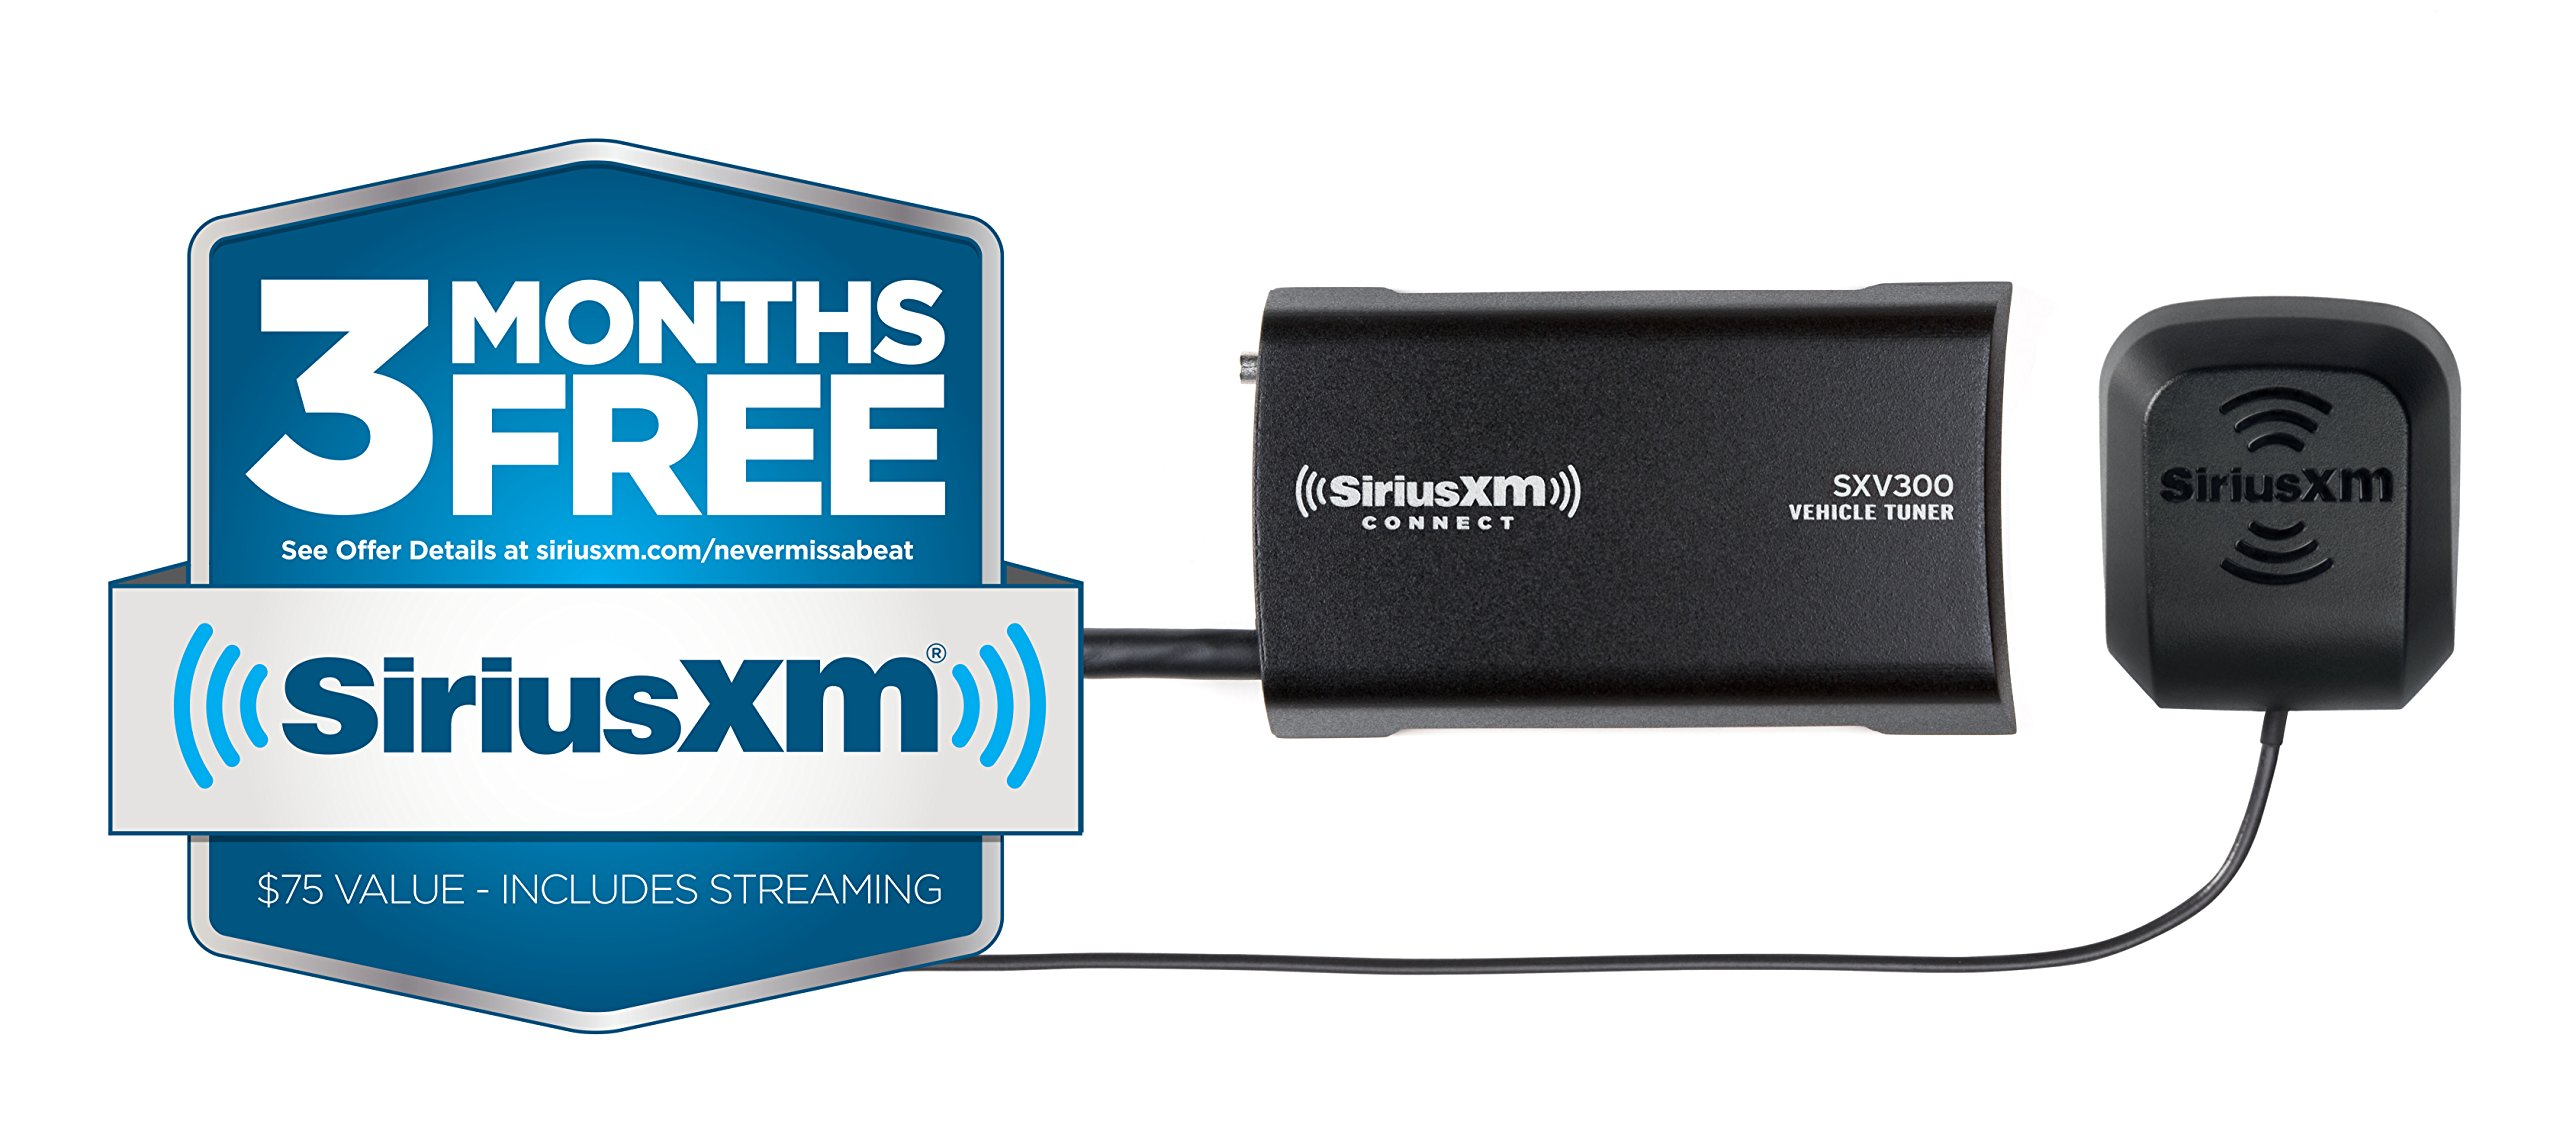 SiriusXM SXV300v1 Connect Vehicle Tuner Kit for Satellite Radio with Free 3 Months Satellite and Streaming Service by SiriusXM